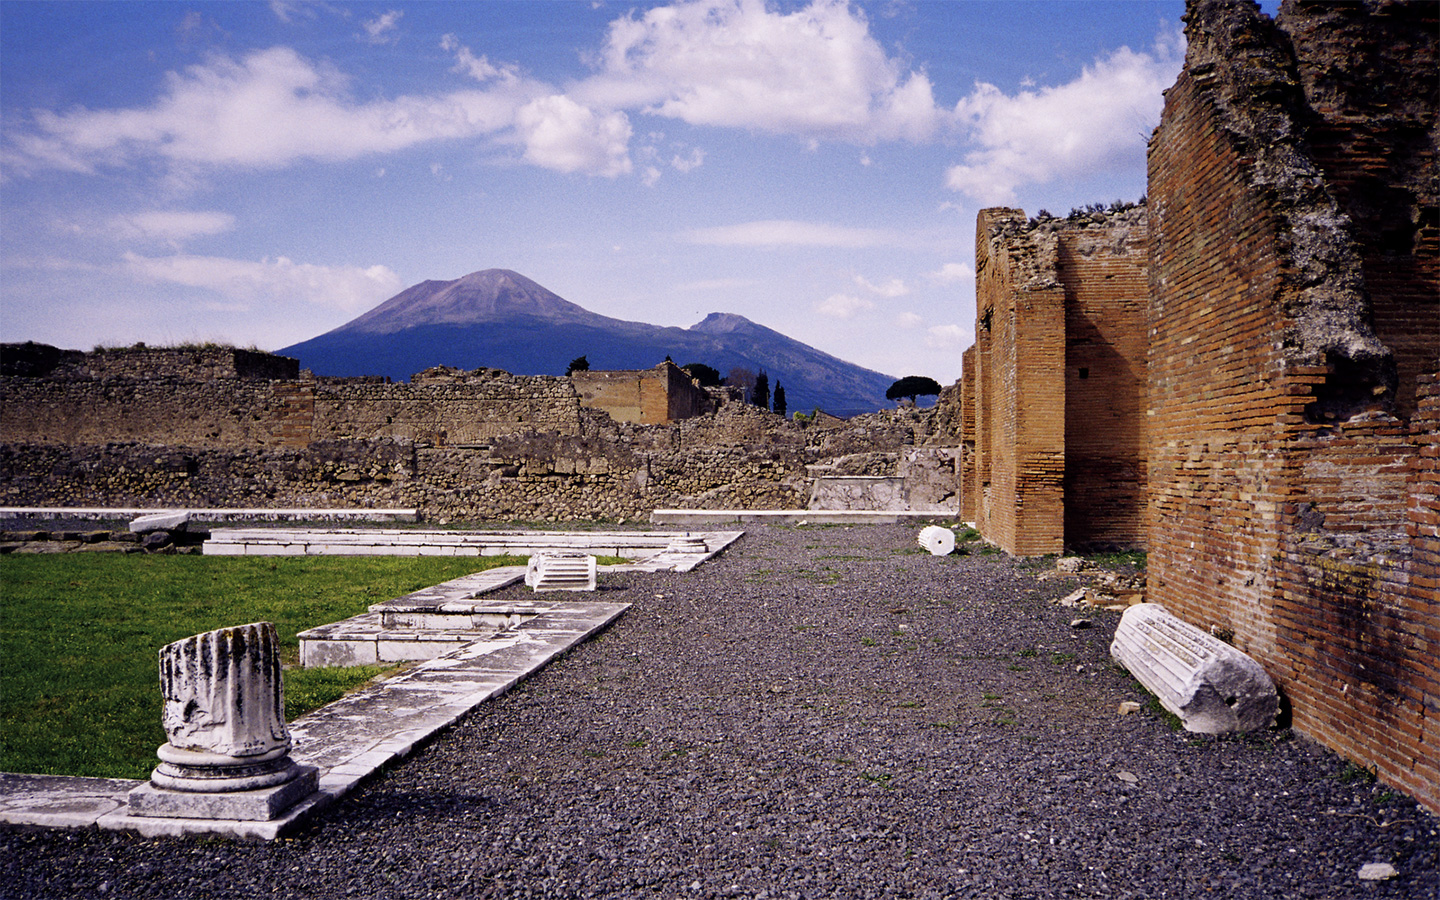 cities of vesuvius pompeii and herculaneum Cities of vesuvius: pompeii and herculaneum has been written especially for the core topic of the new nsw hsc ancient history syllabus.